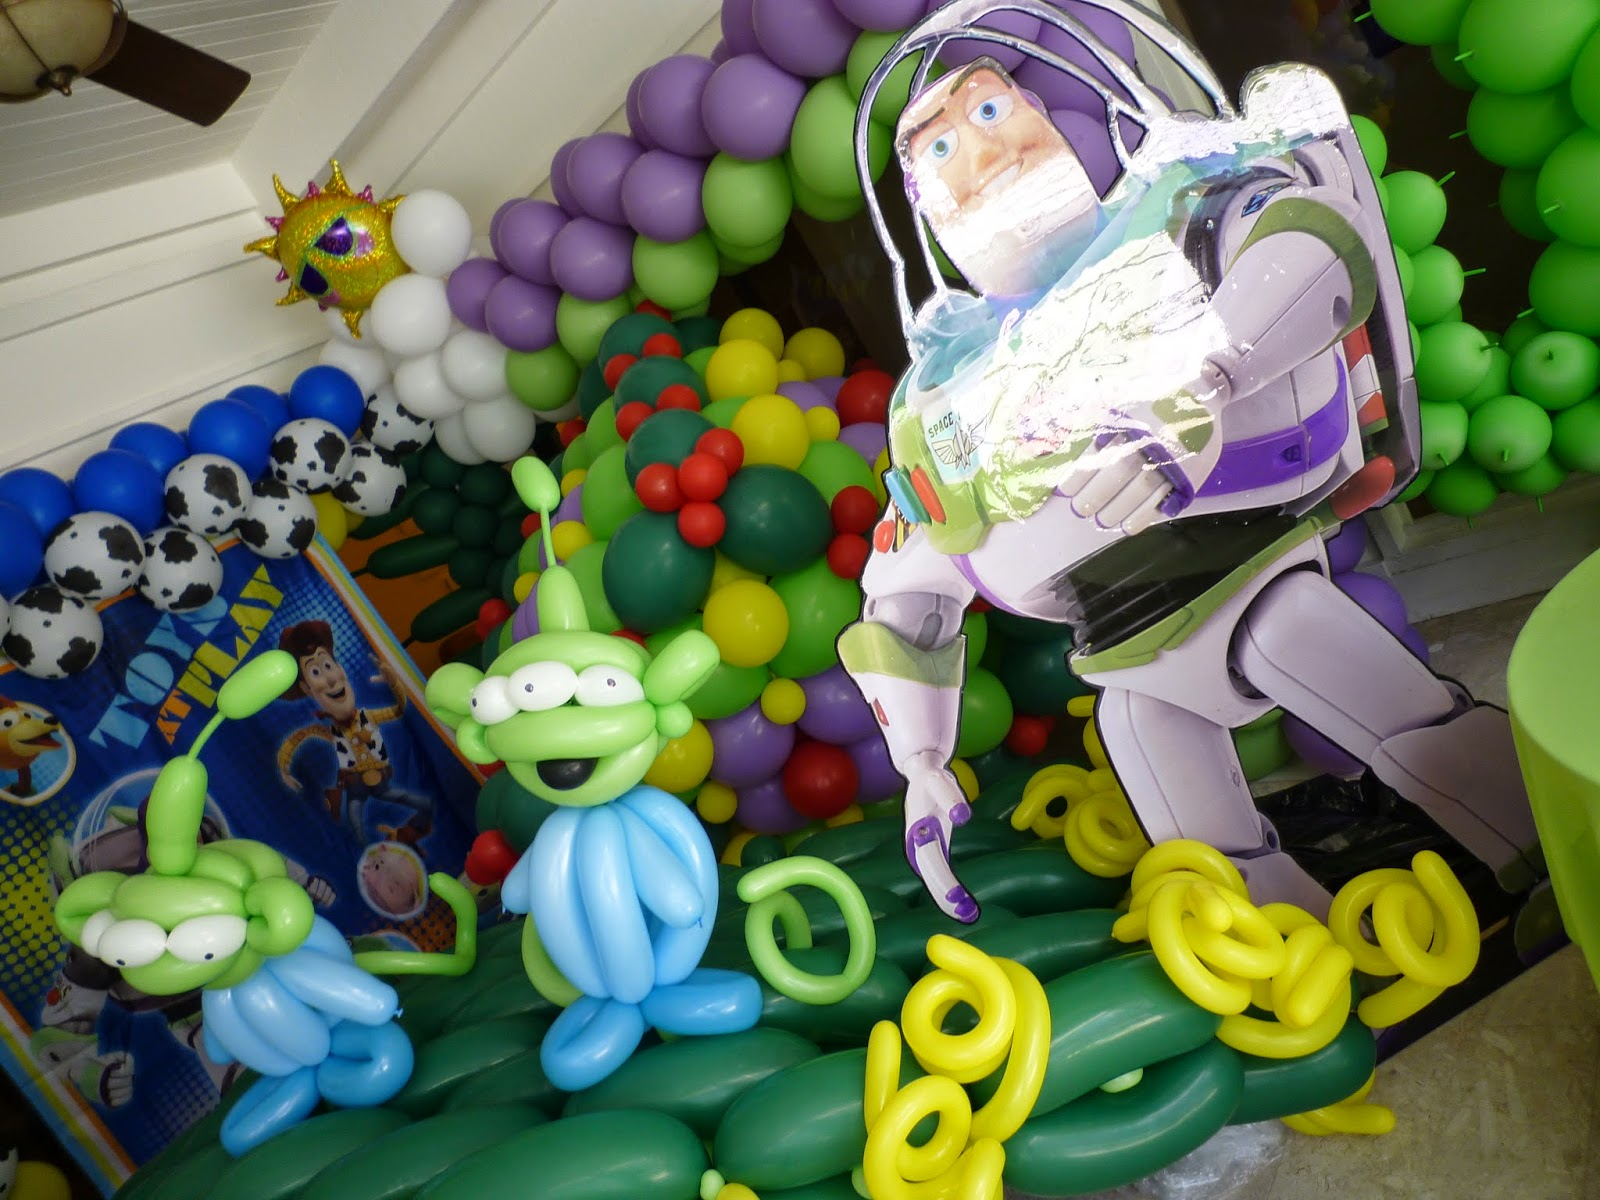 Buzz Lightyear toy story character sculpture birthday party